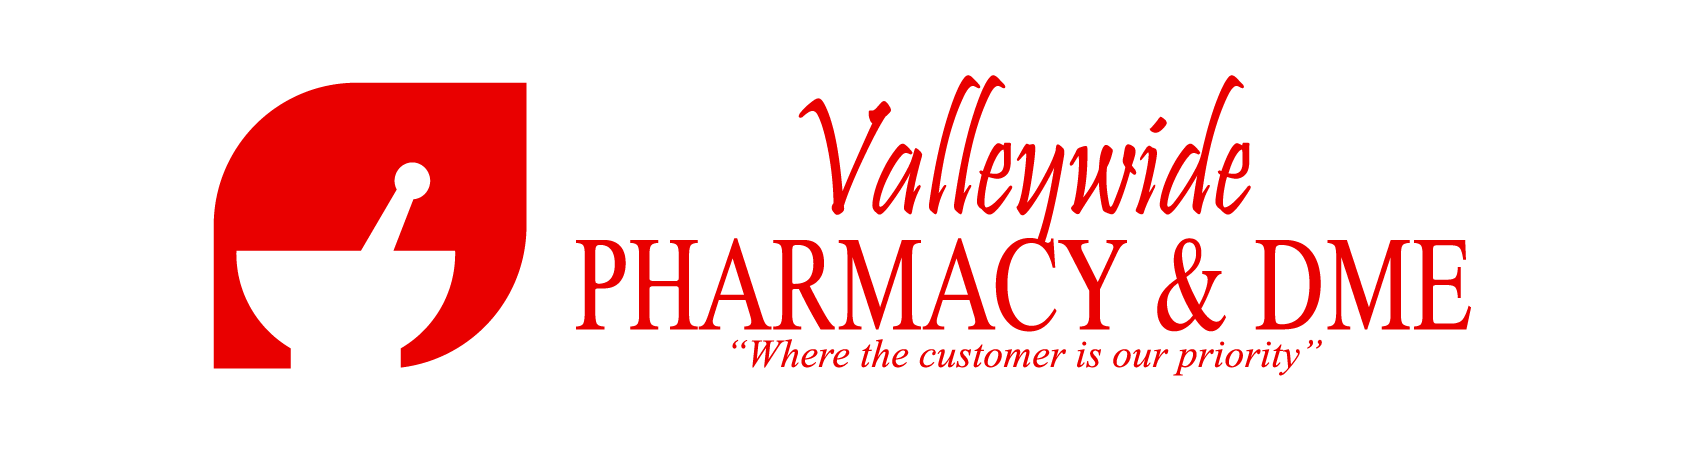 Valleywide Pharmacy & DME